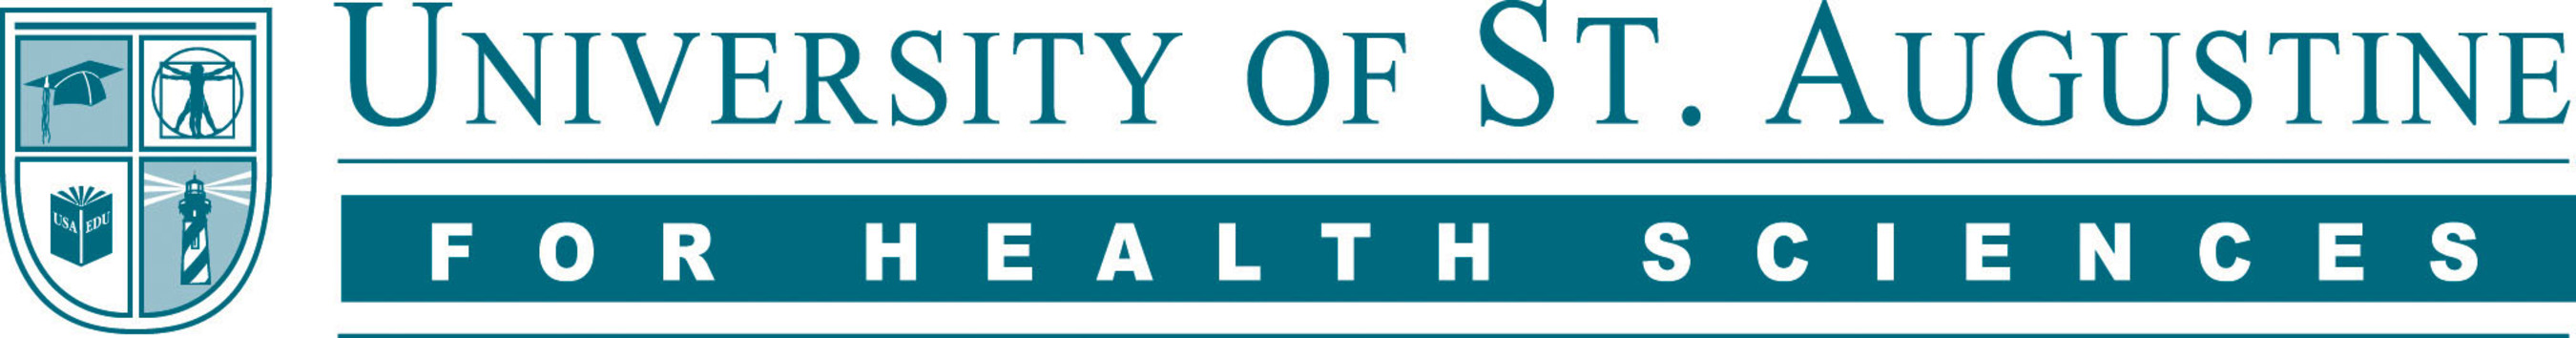 The University of St. Augustine for Health Sciences (USAHS) is a graduate institution that emphasizes health science education through innovative quality classroom and distance education. Founded in 1979, USAHS has locations in San Marcos, California; St. Augustine, Florida; Austin, Texas and Miami, Florida. USAHS offers degree programs in physical therapy, occupational therapy, education and health science, as well as continuing education programs. For more information, visit www.usa.edu. USAHS is a member of Laureate International Universities, a network of more than 80 institutions in 28 countries and one of the most significant global higher education providers for health sciences.